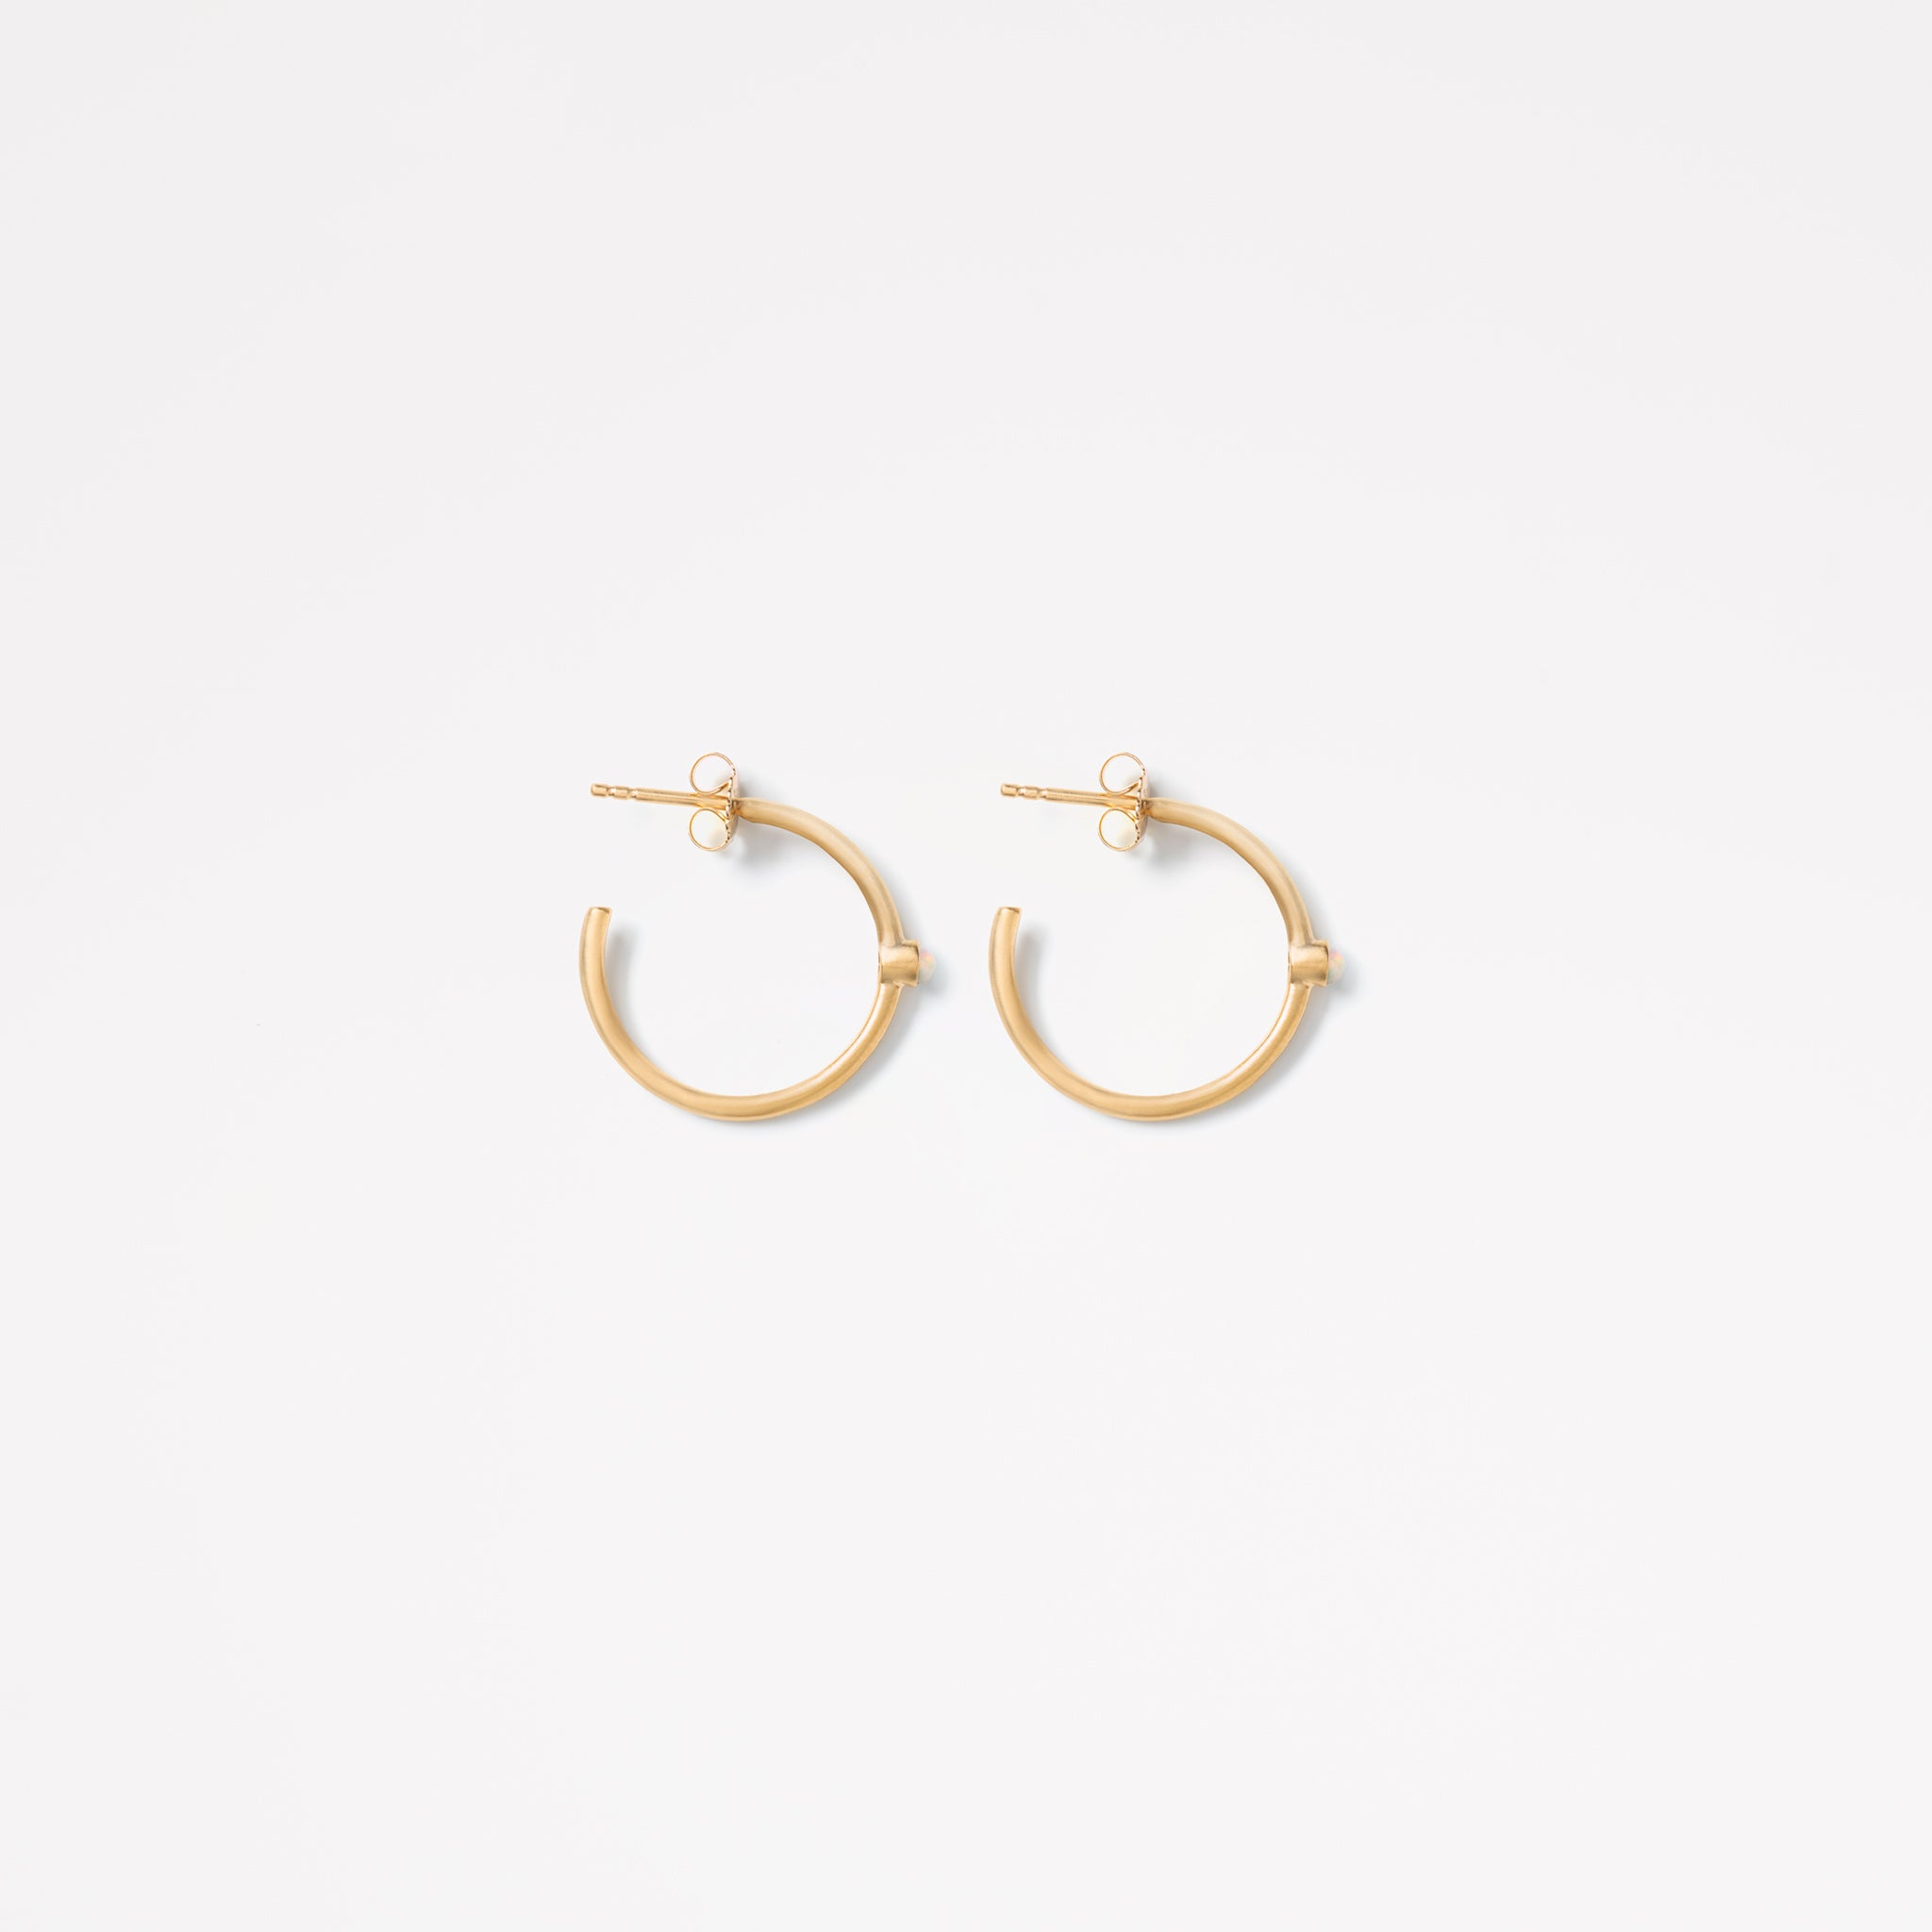 Wanderlust Life large gold hoop Astrea earrings with semi precious opal gemstones. Stack your hoops with the Astrea petite gold hoop opal earrings. Wanderlust Life jewellery designed in the UK.